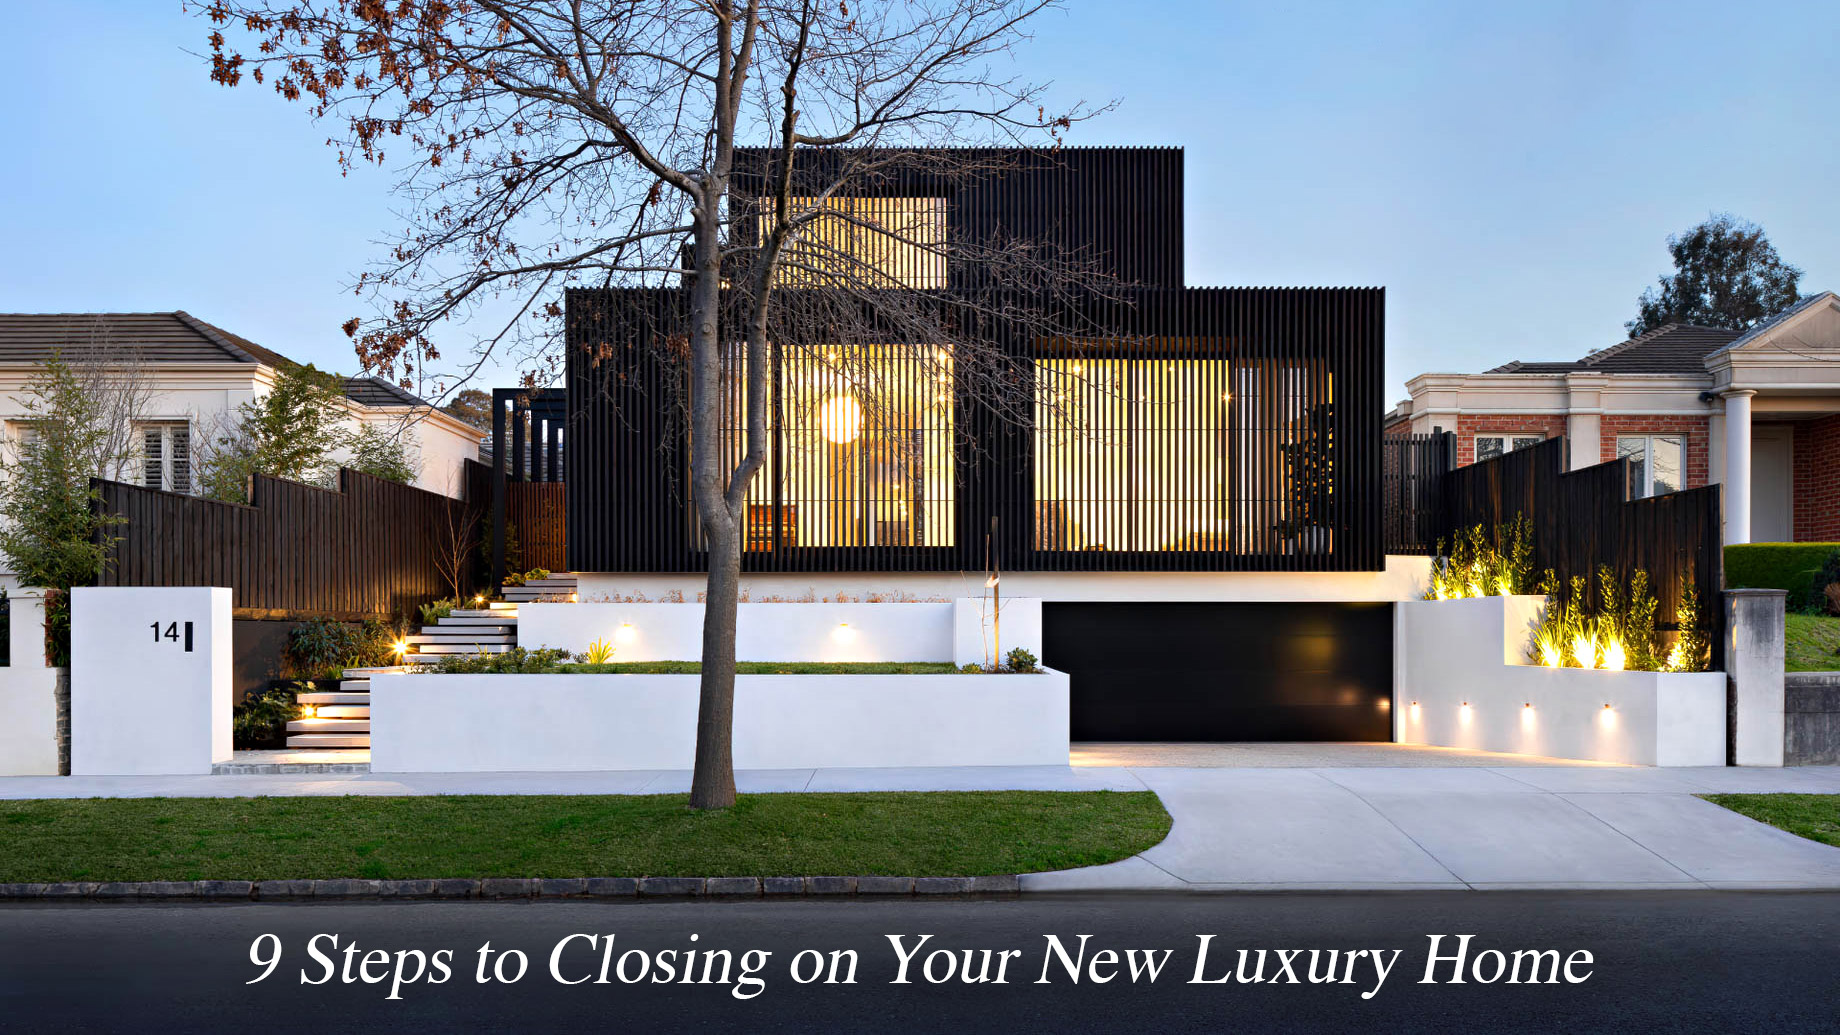 9 Steps to Closing on Your New Luxury Home